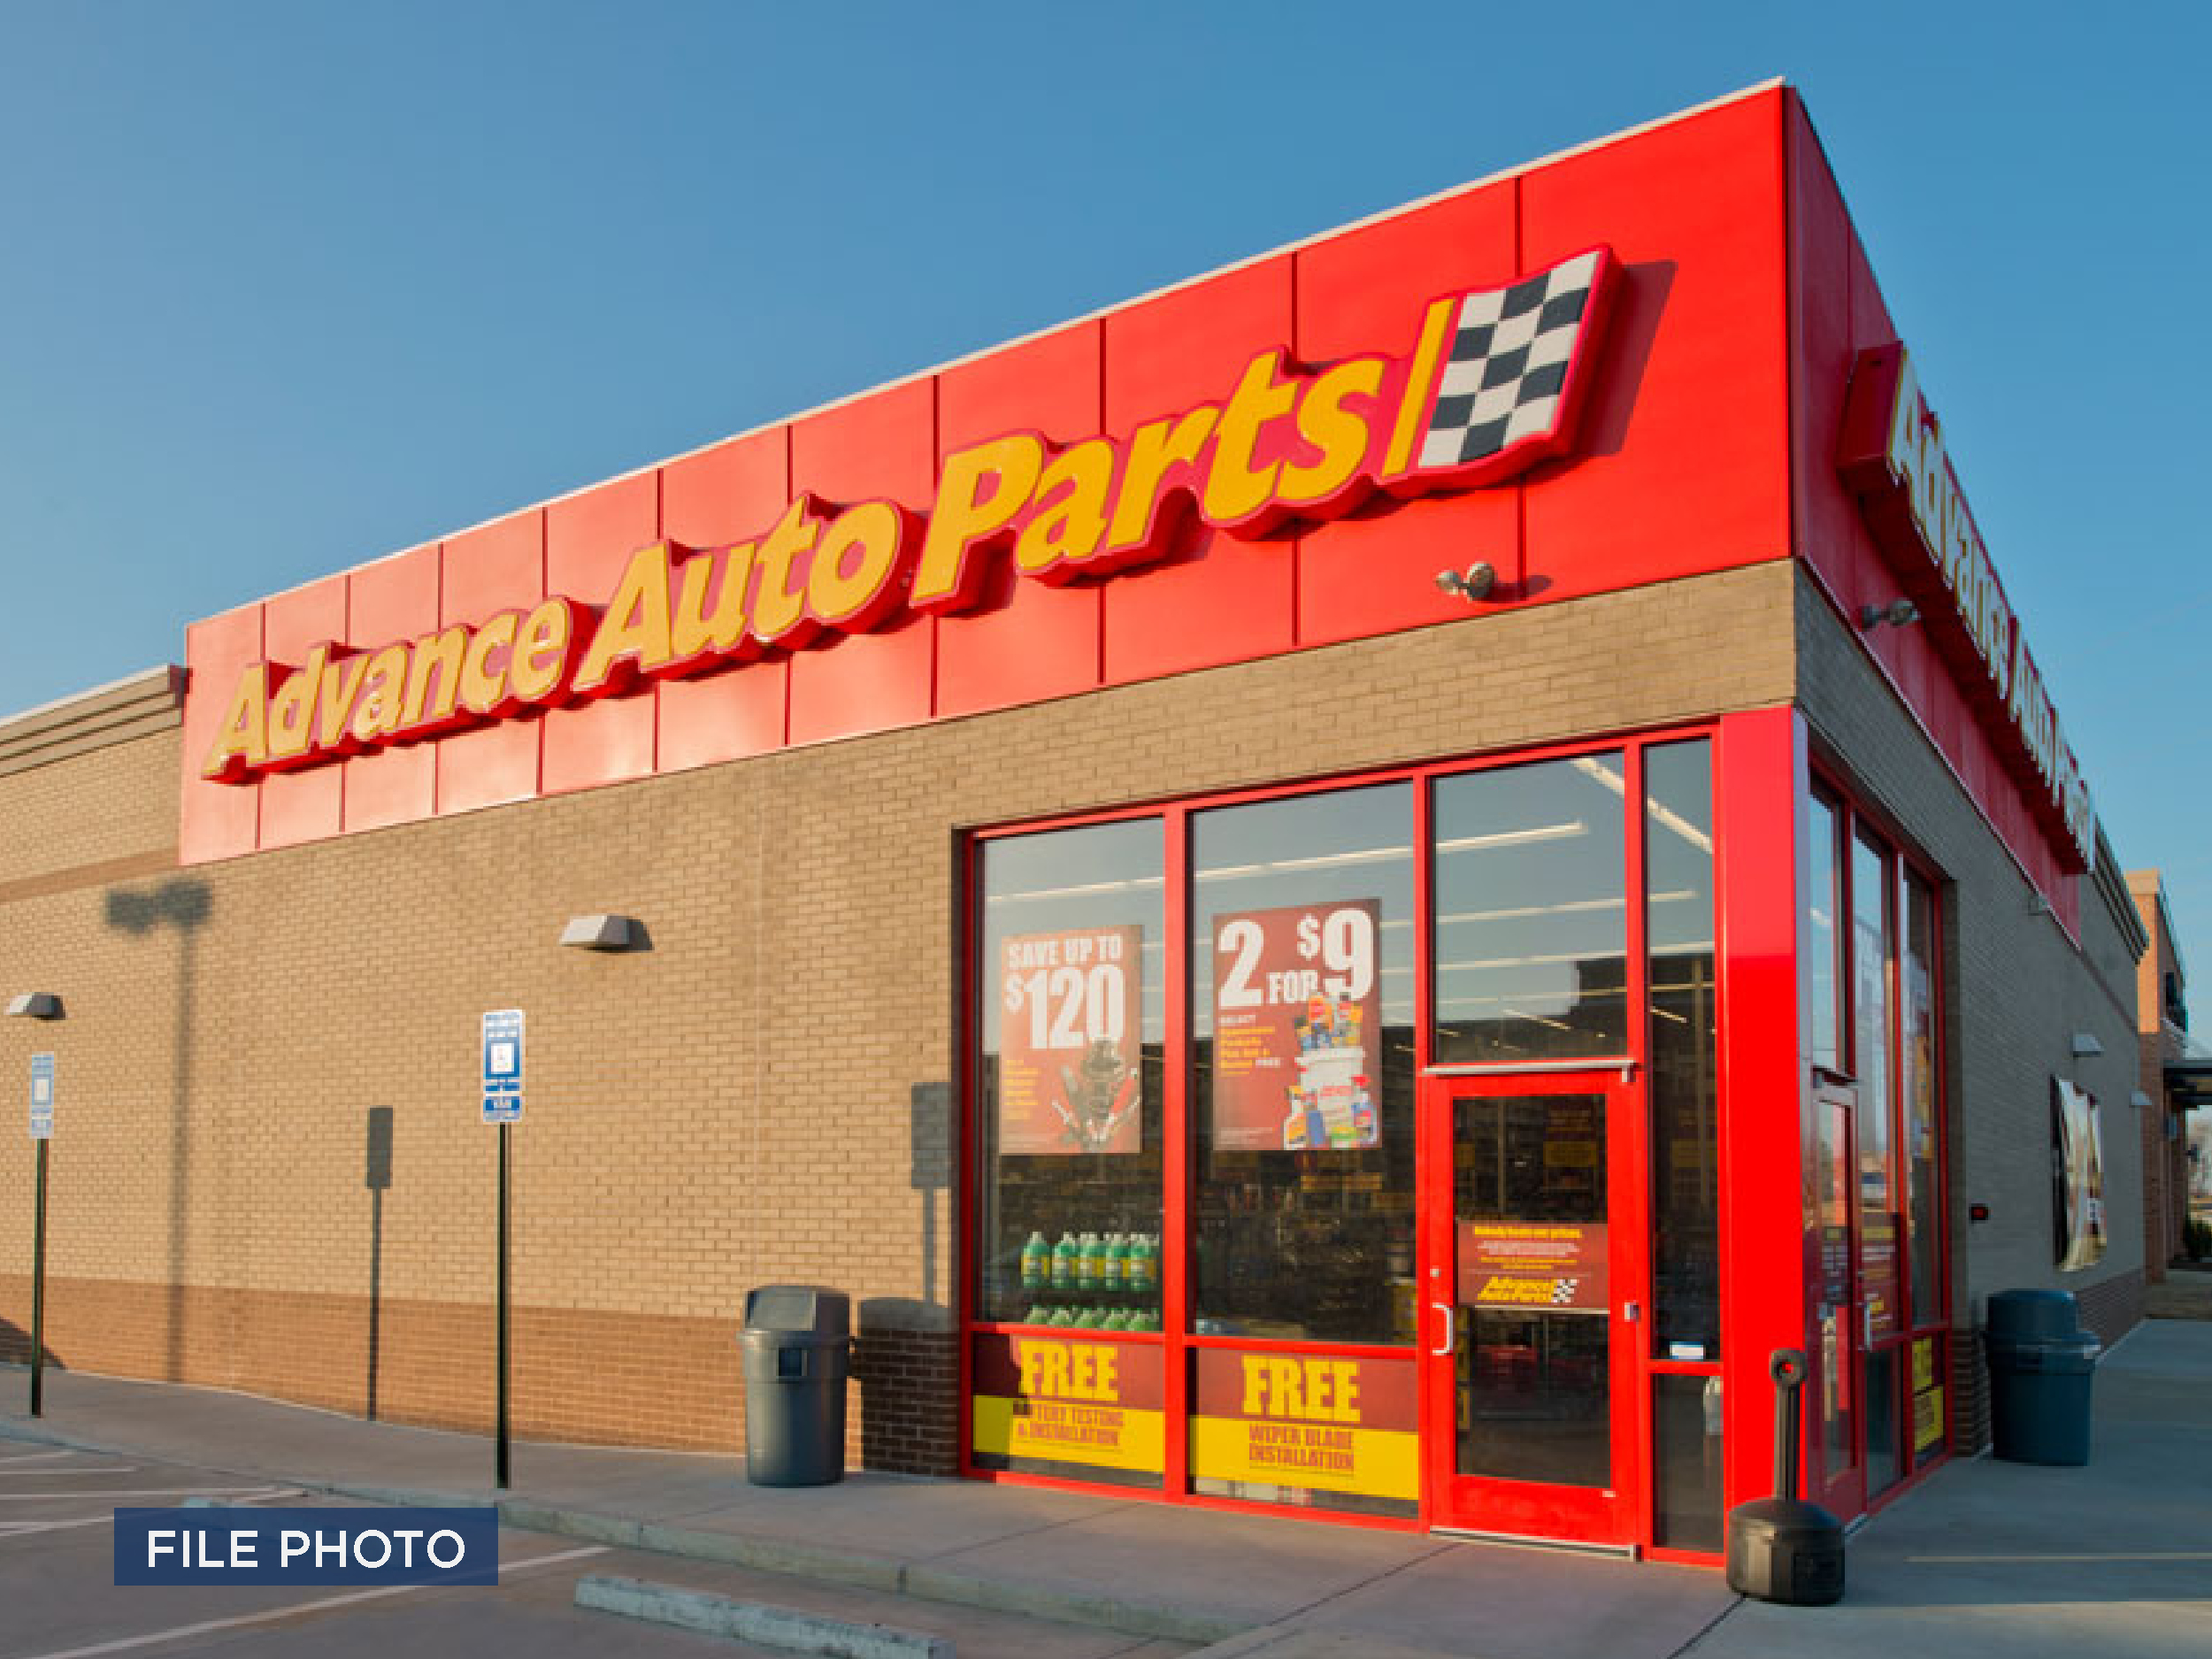 Net Leased Investment Property For Sale Advance Auto Parts